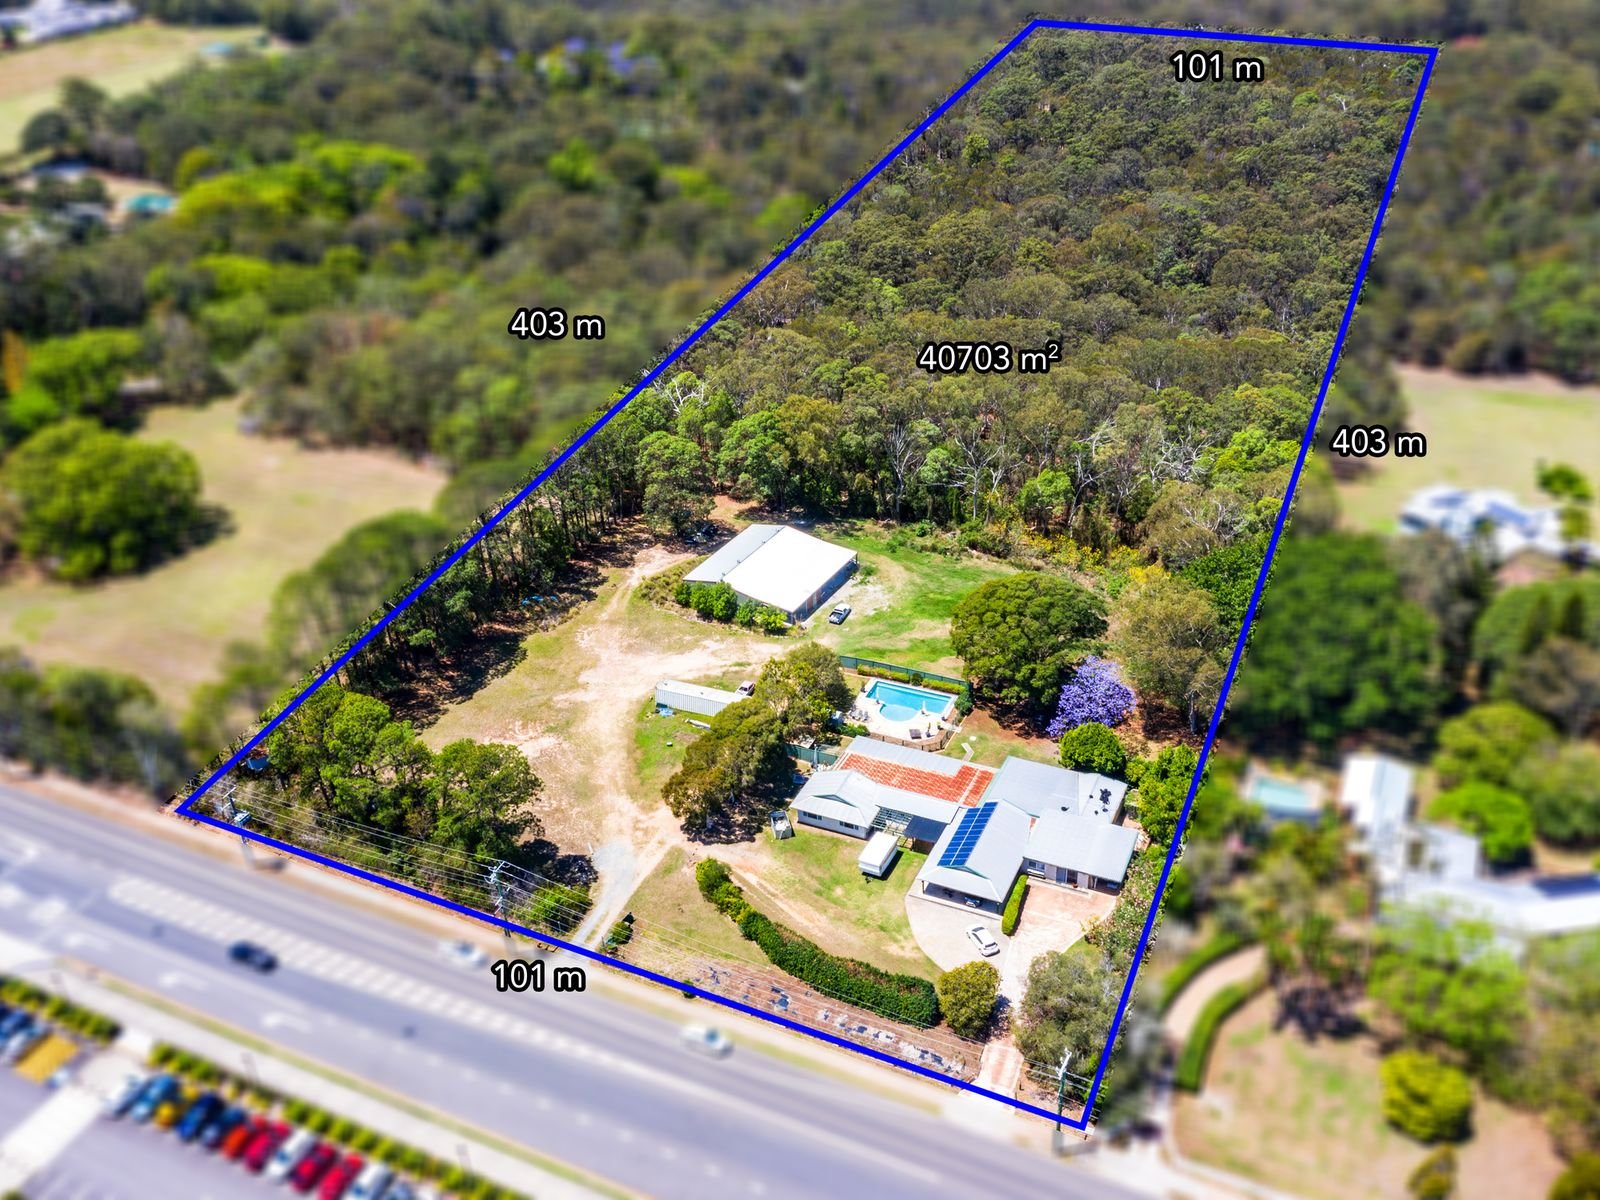 760 Rochedale Road, Rochedale, QLD 4123